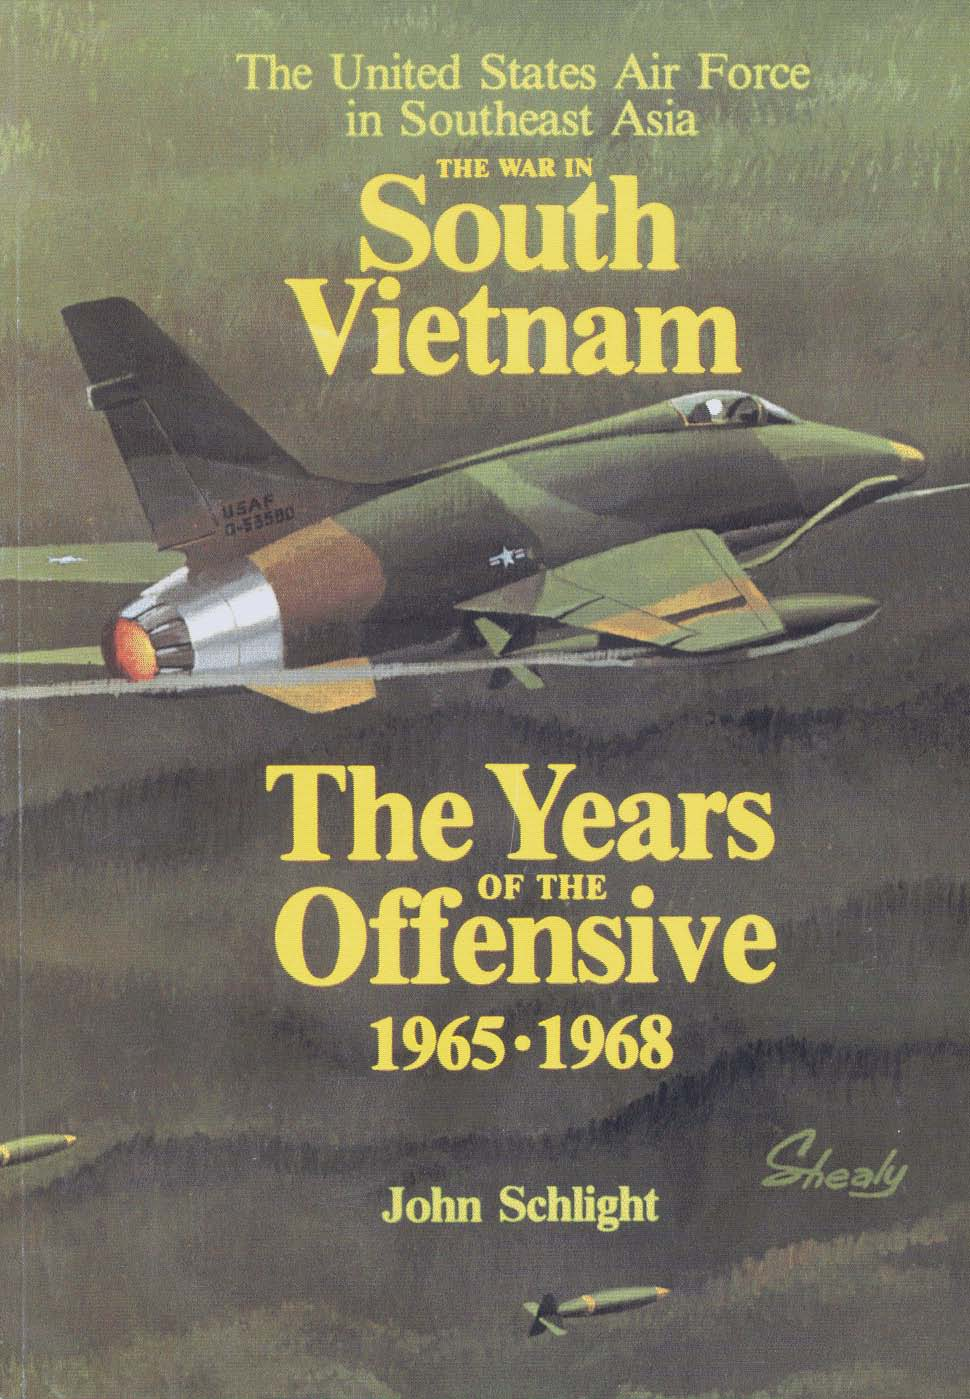 a history and the statistics of the vietnamese conflict The memory of the vietnam war is studded with occasional misinformation and errors this list of vietnam war facts, and statistics helps set things right.